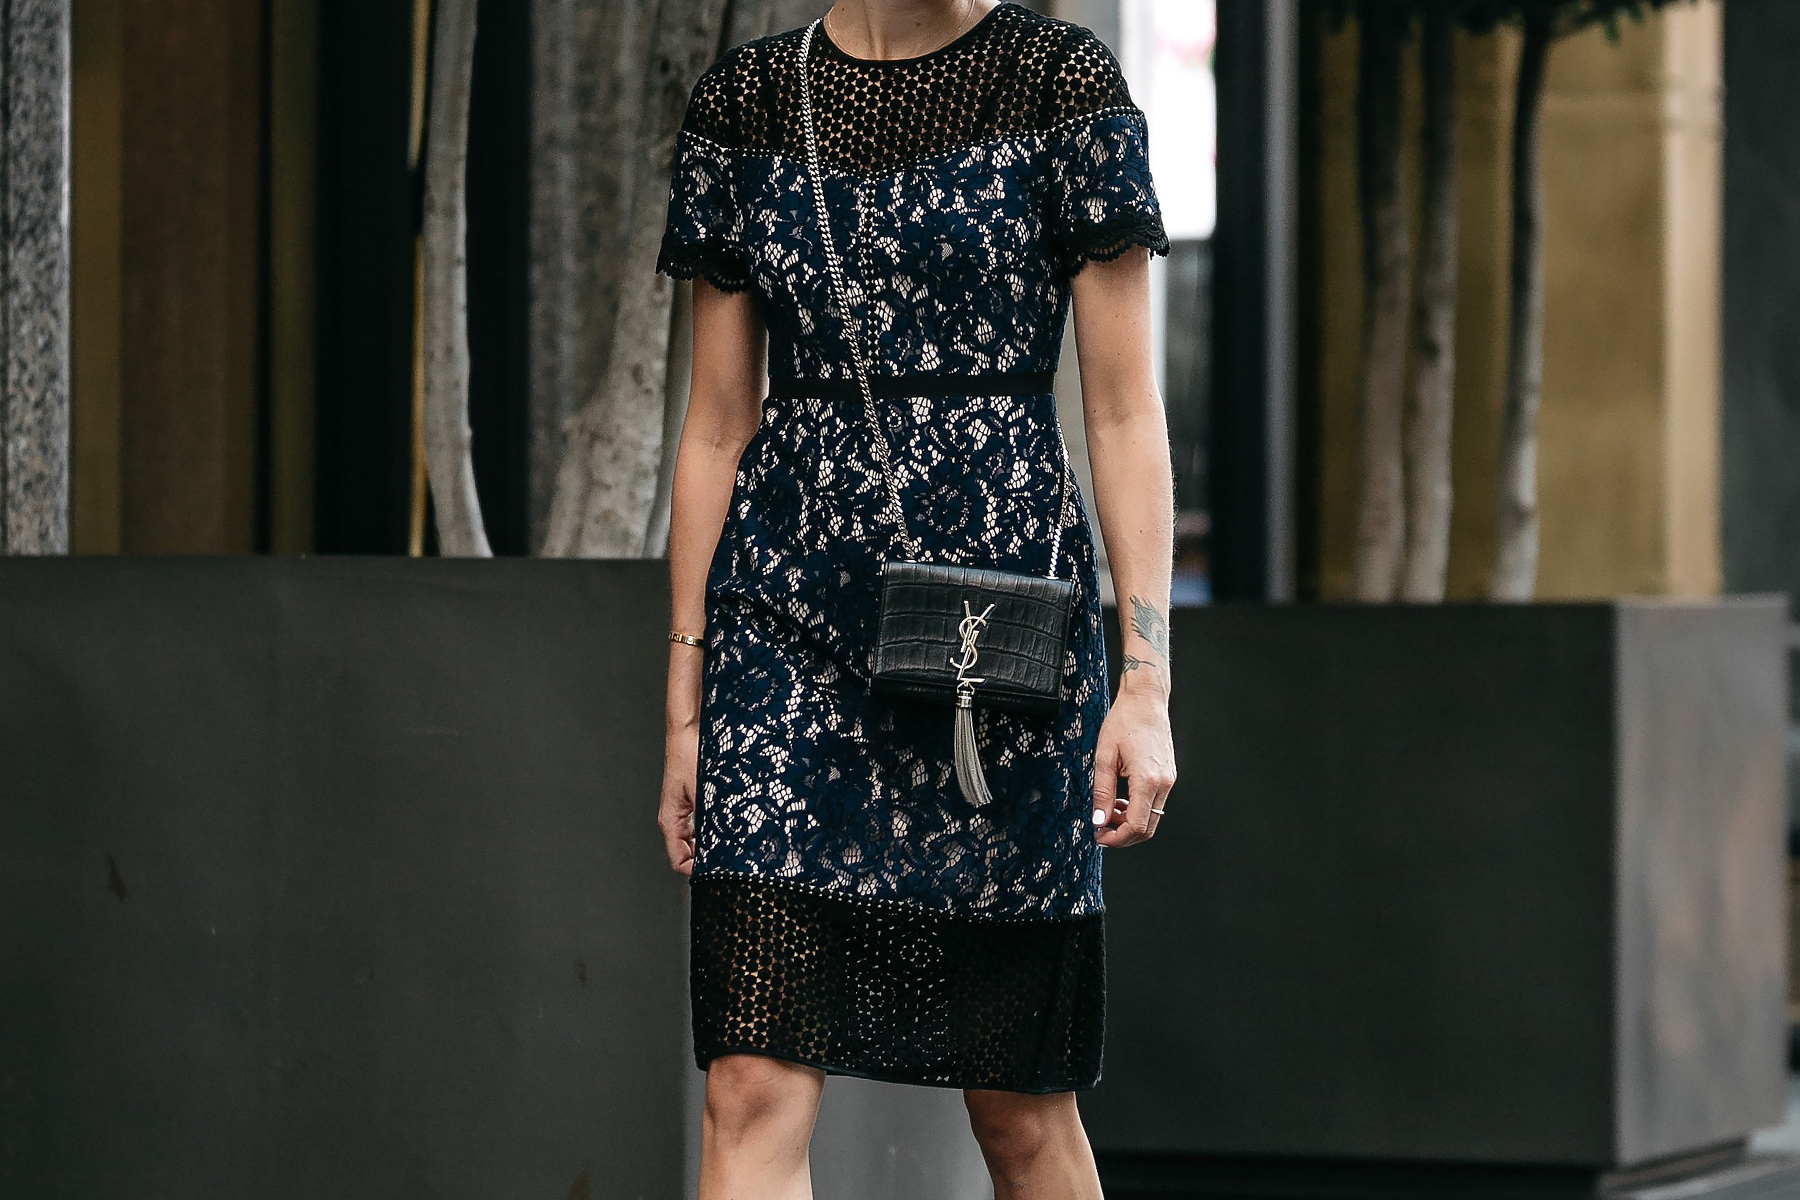 Club Monaco Black Navy Lace Dress YSL Black Monogram Tassel Clutch Fashion Jackson Dallas Blogger Fashion Blogger Street Style